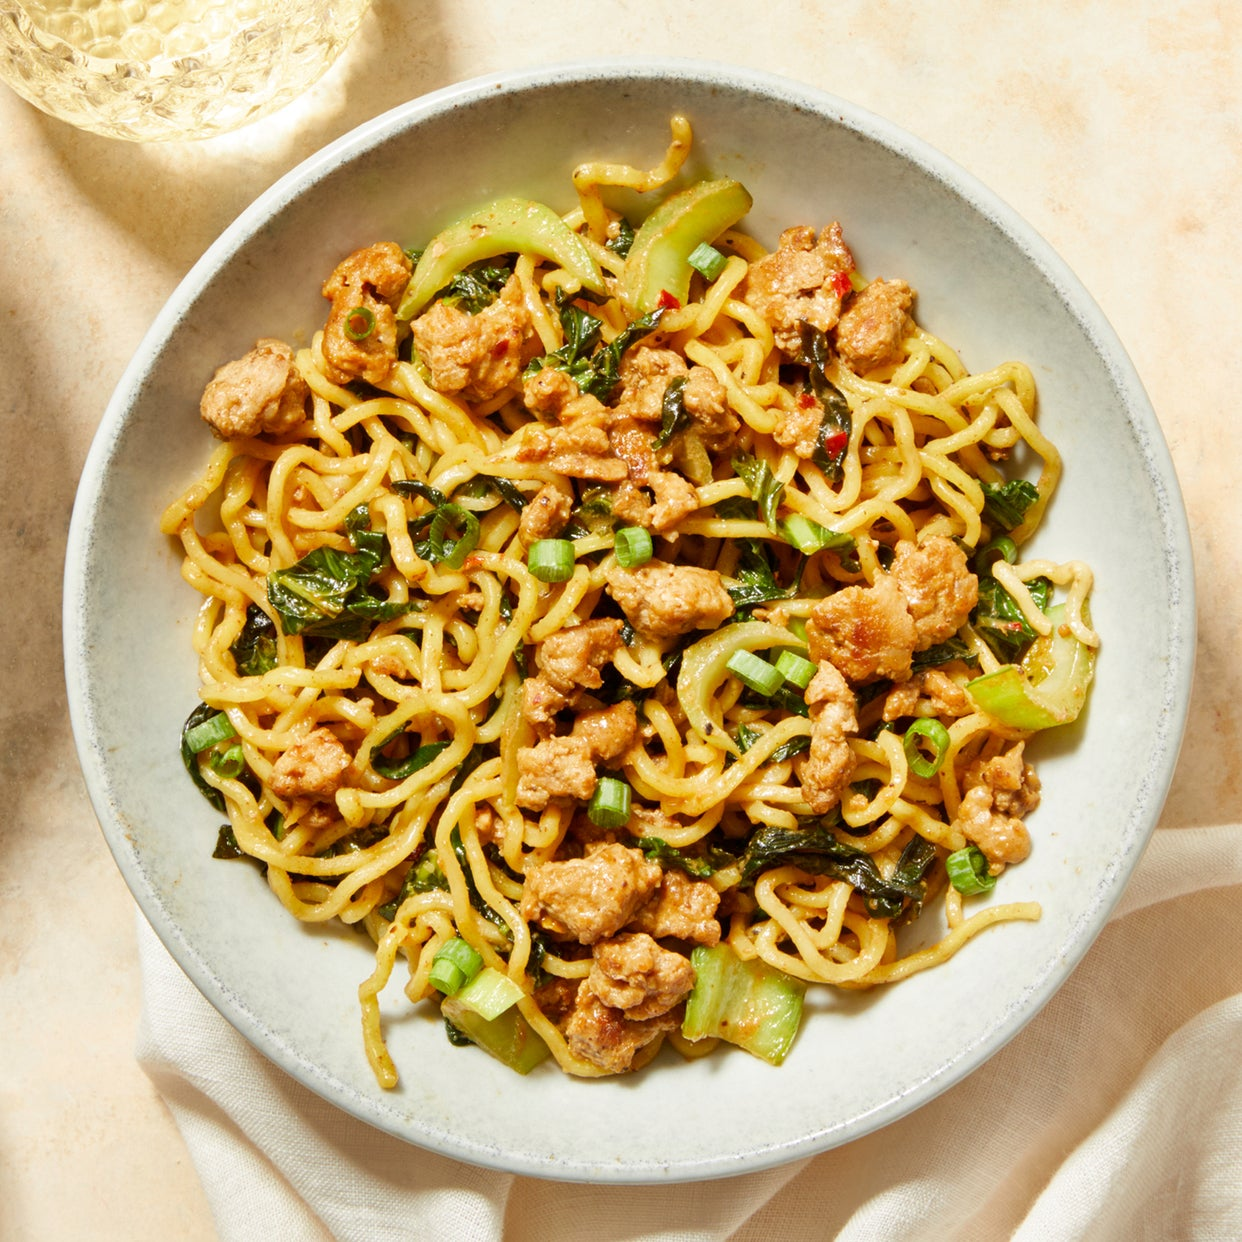 Sichuan-Style Pork & Noodles with Baby Bok Choy